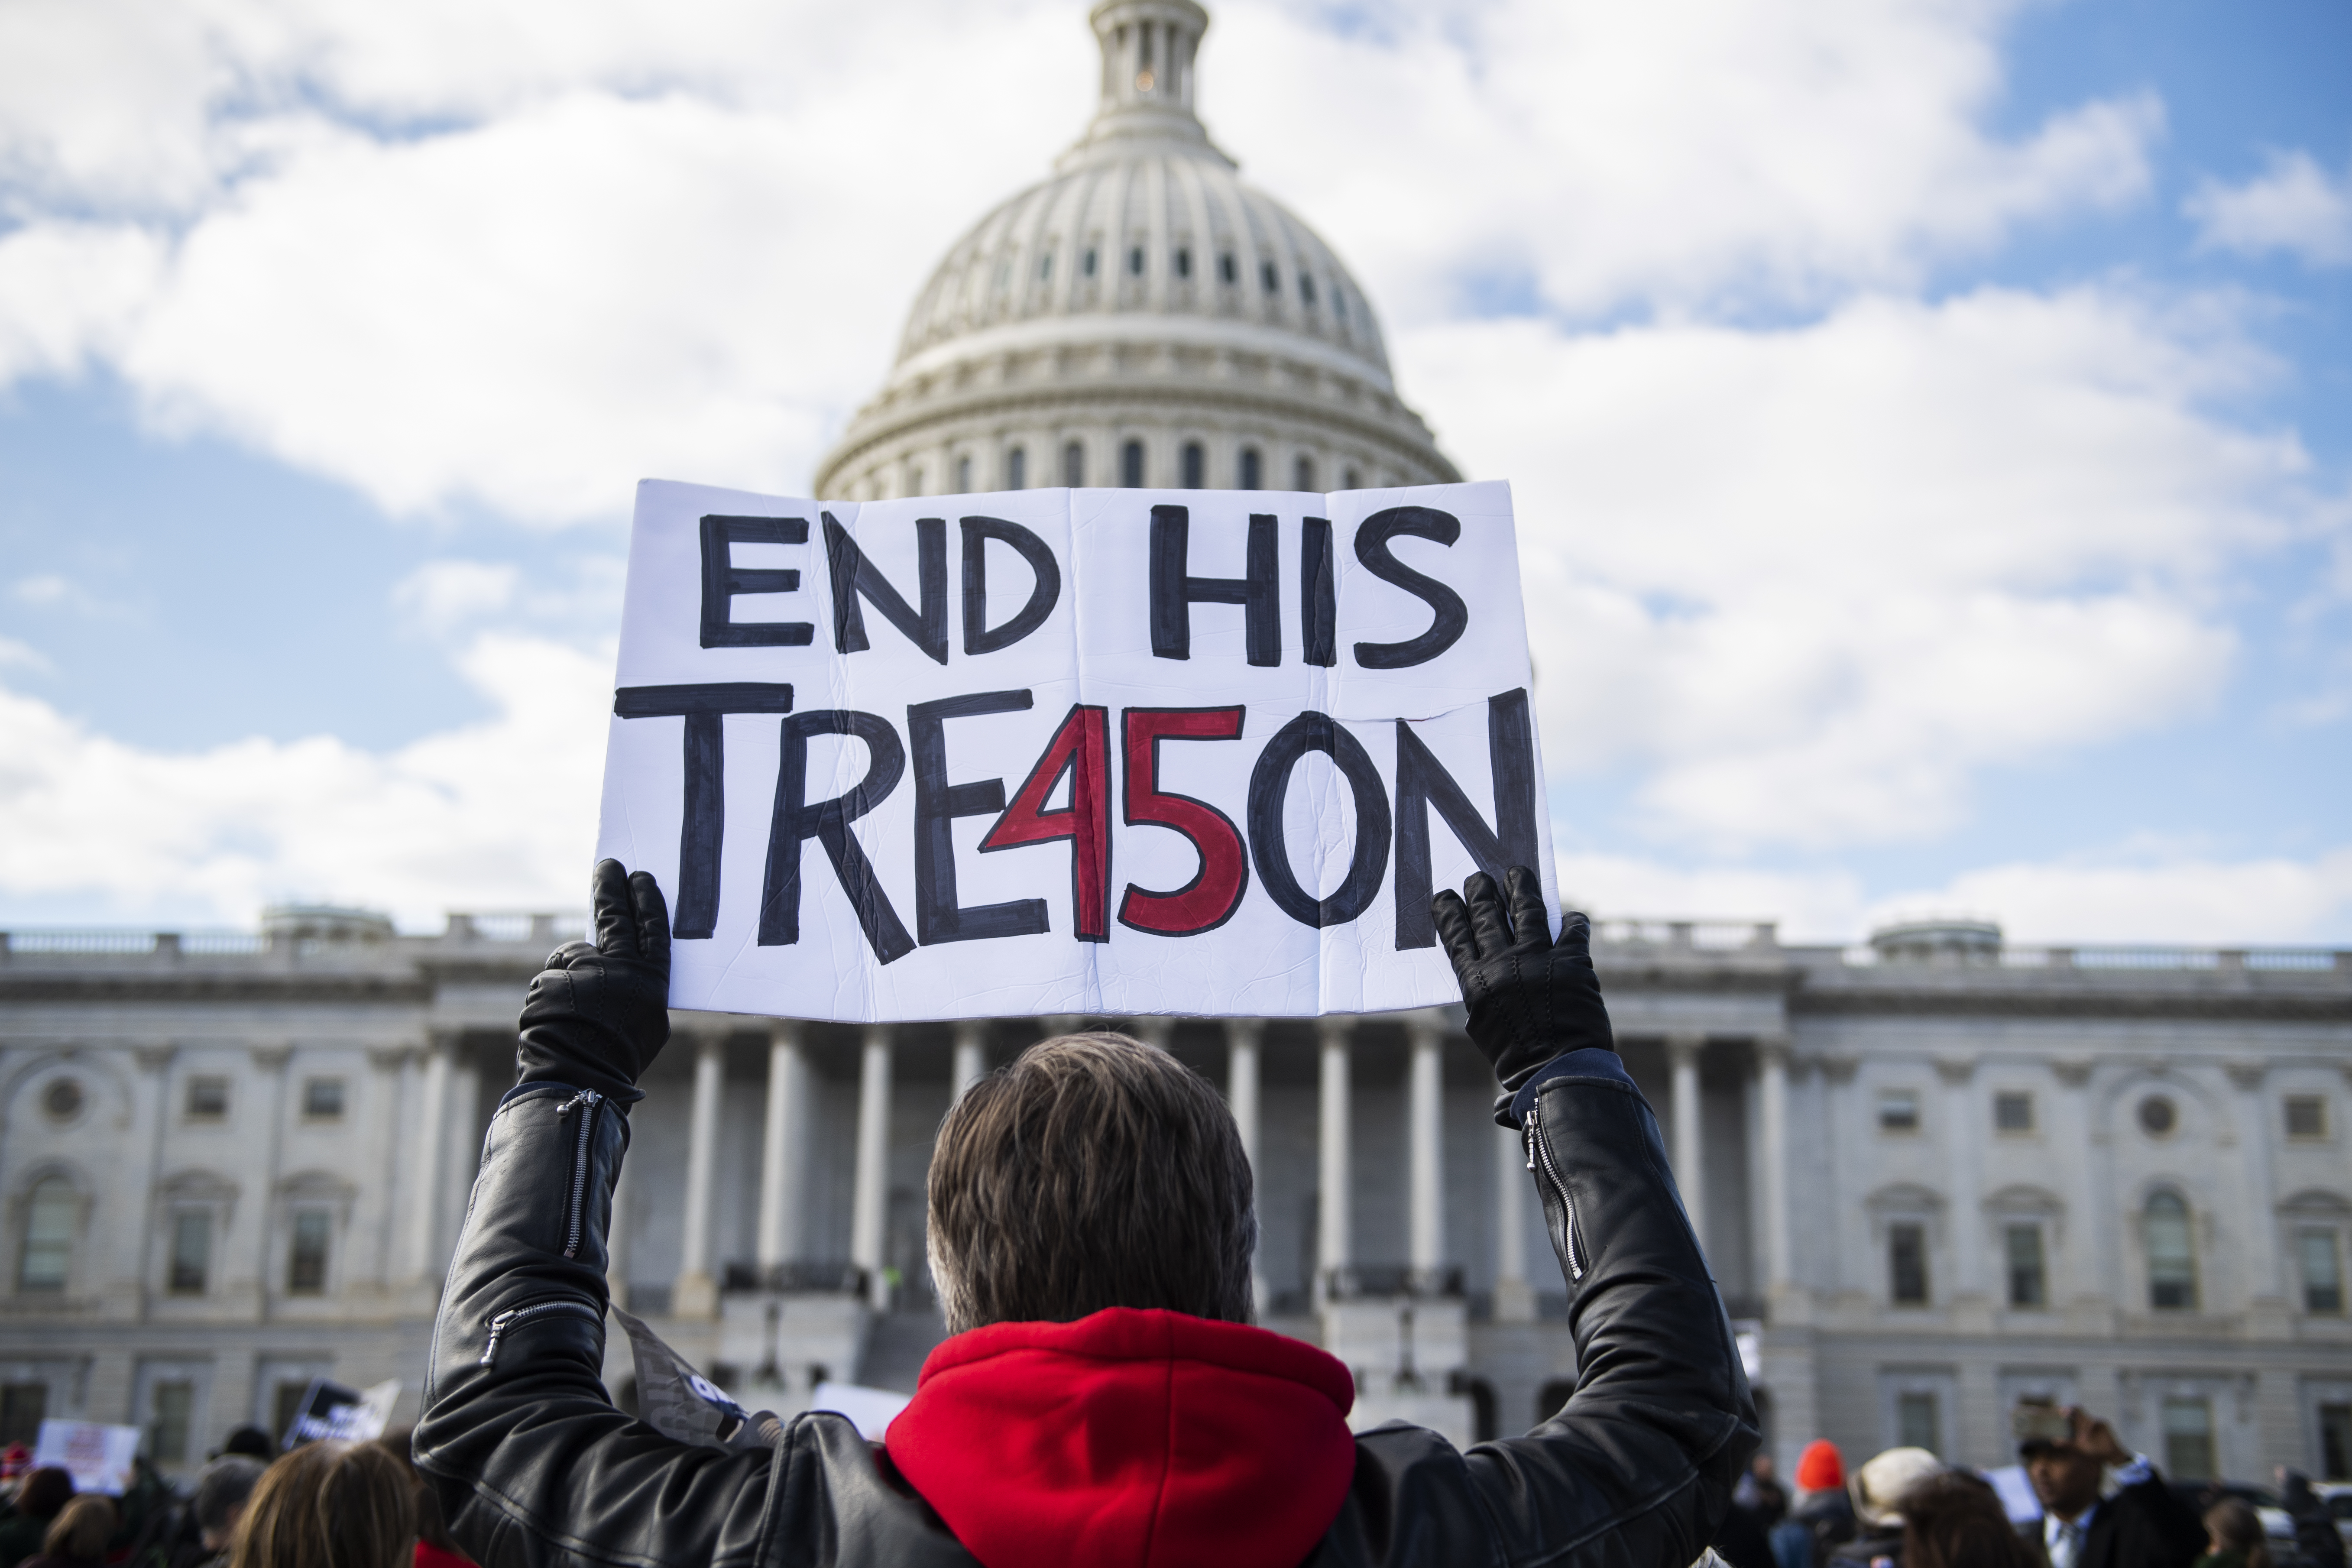 UNITED STATES - JANUARY 29: Demonstrators calling for witnesses in the impeachment trial of President Donald Trump, assemble on the East Front of the Capitol on Wednesday, January 29, 2020. (Photo By Tom Williams/CQ Roll Call)